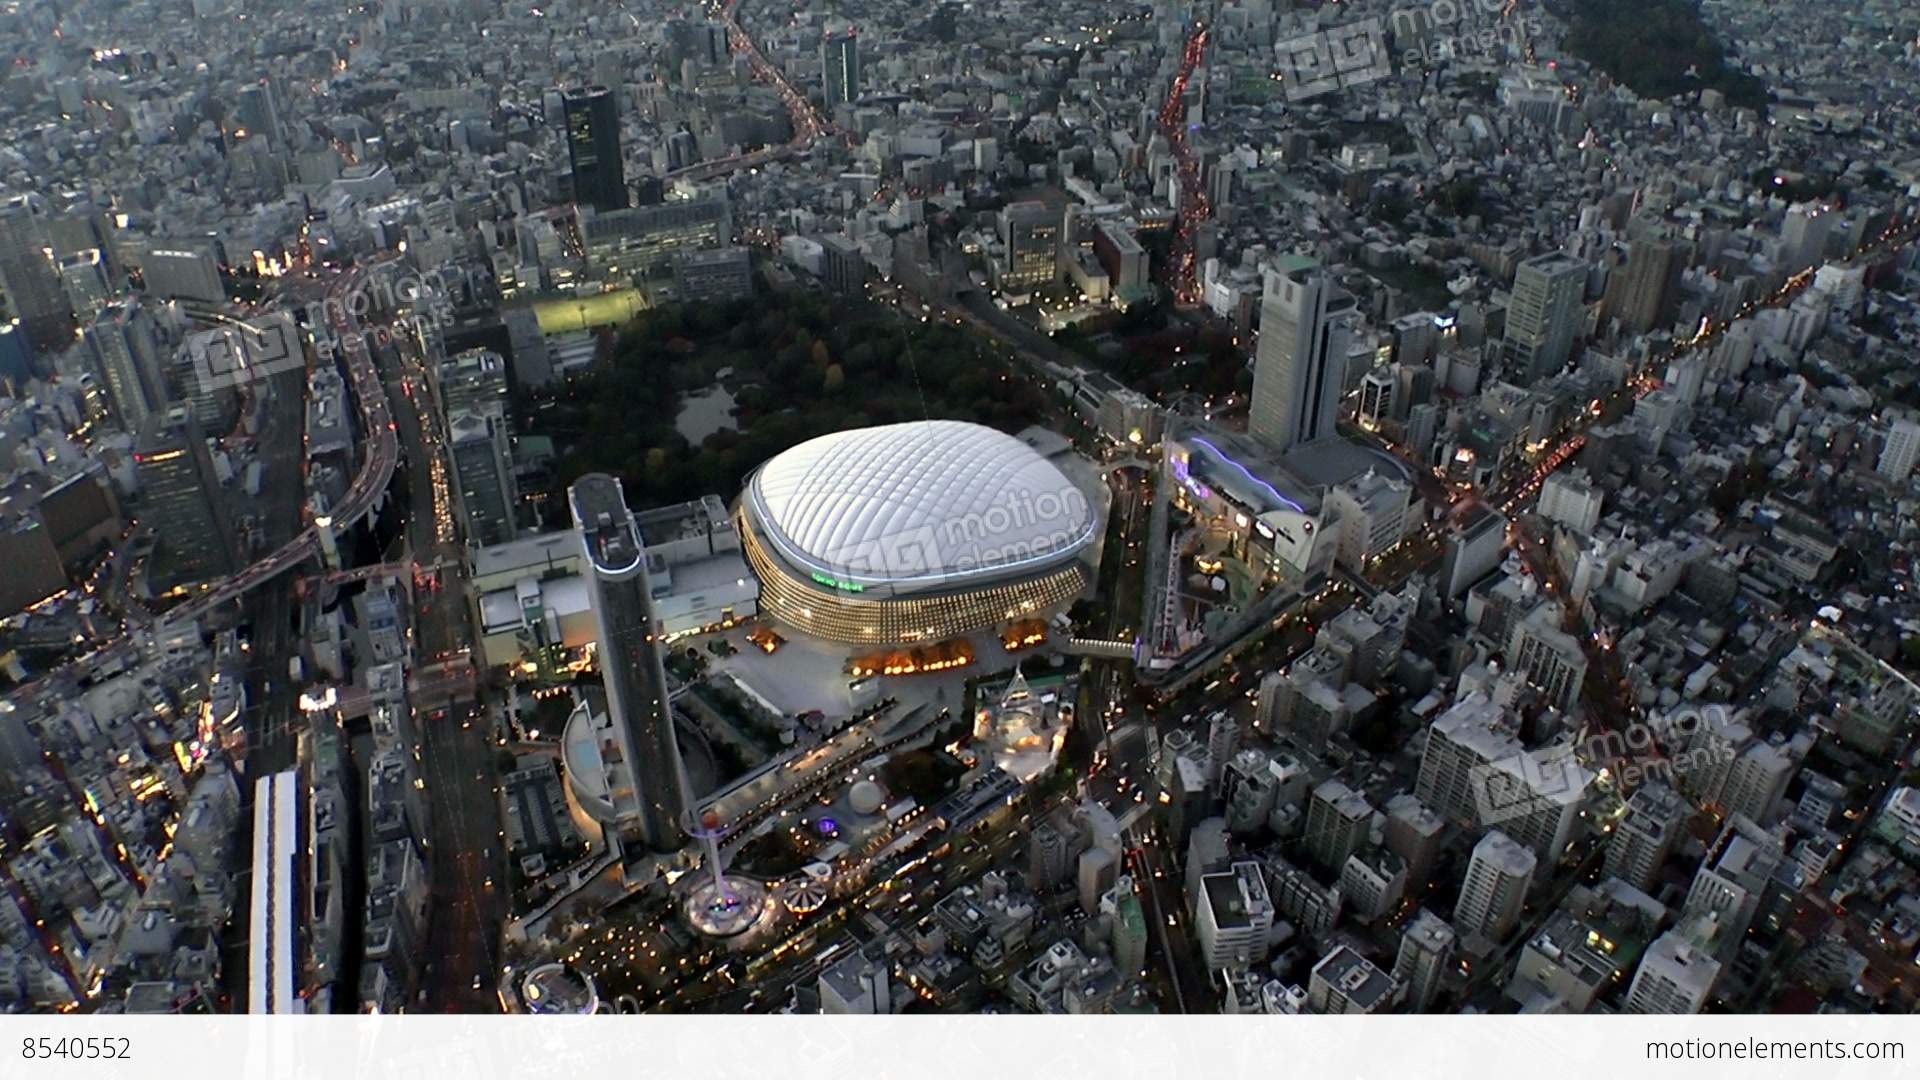 Tokyo Dome Light Up Aerial Shoot In Tokyo Japan Stock